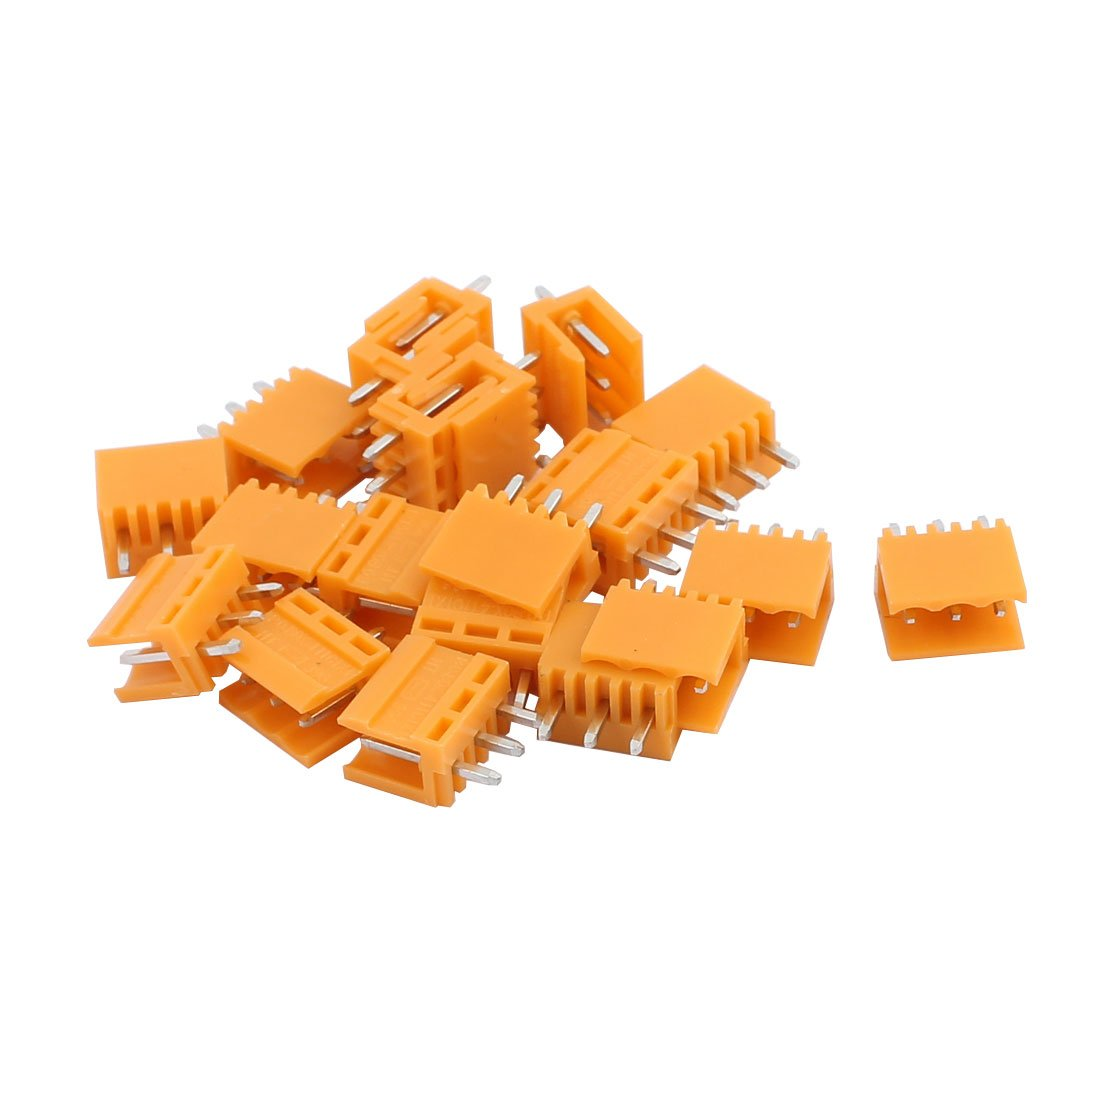 uxcell 20Pcs AC300V 3.96mm Pitch 3P Straight Needle Seat Plug-in PCB Terminal Block Connector a16122000ux0488